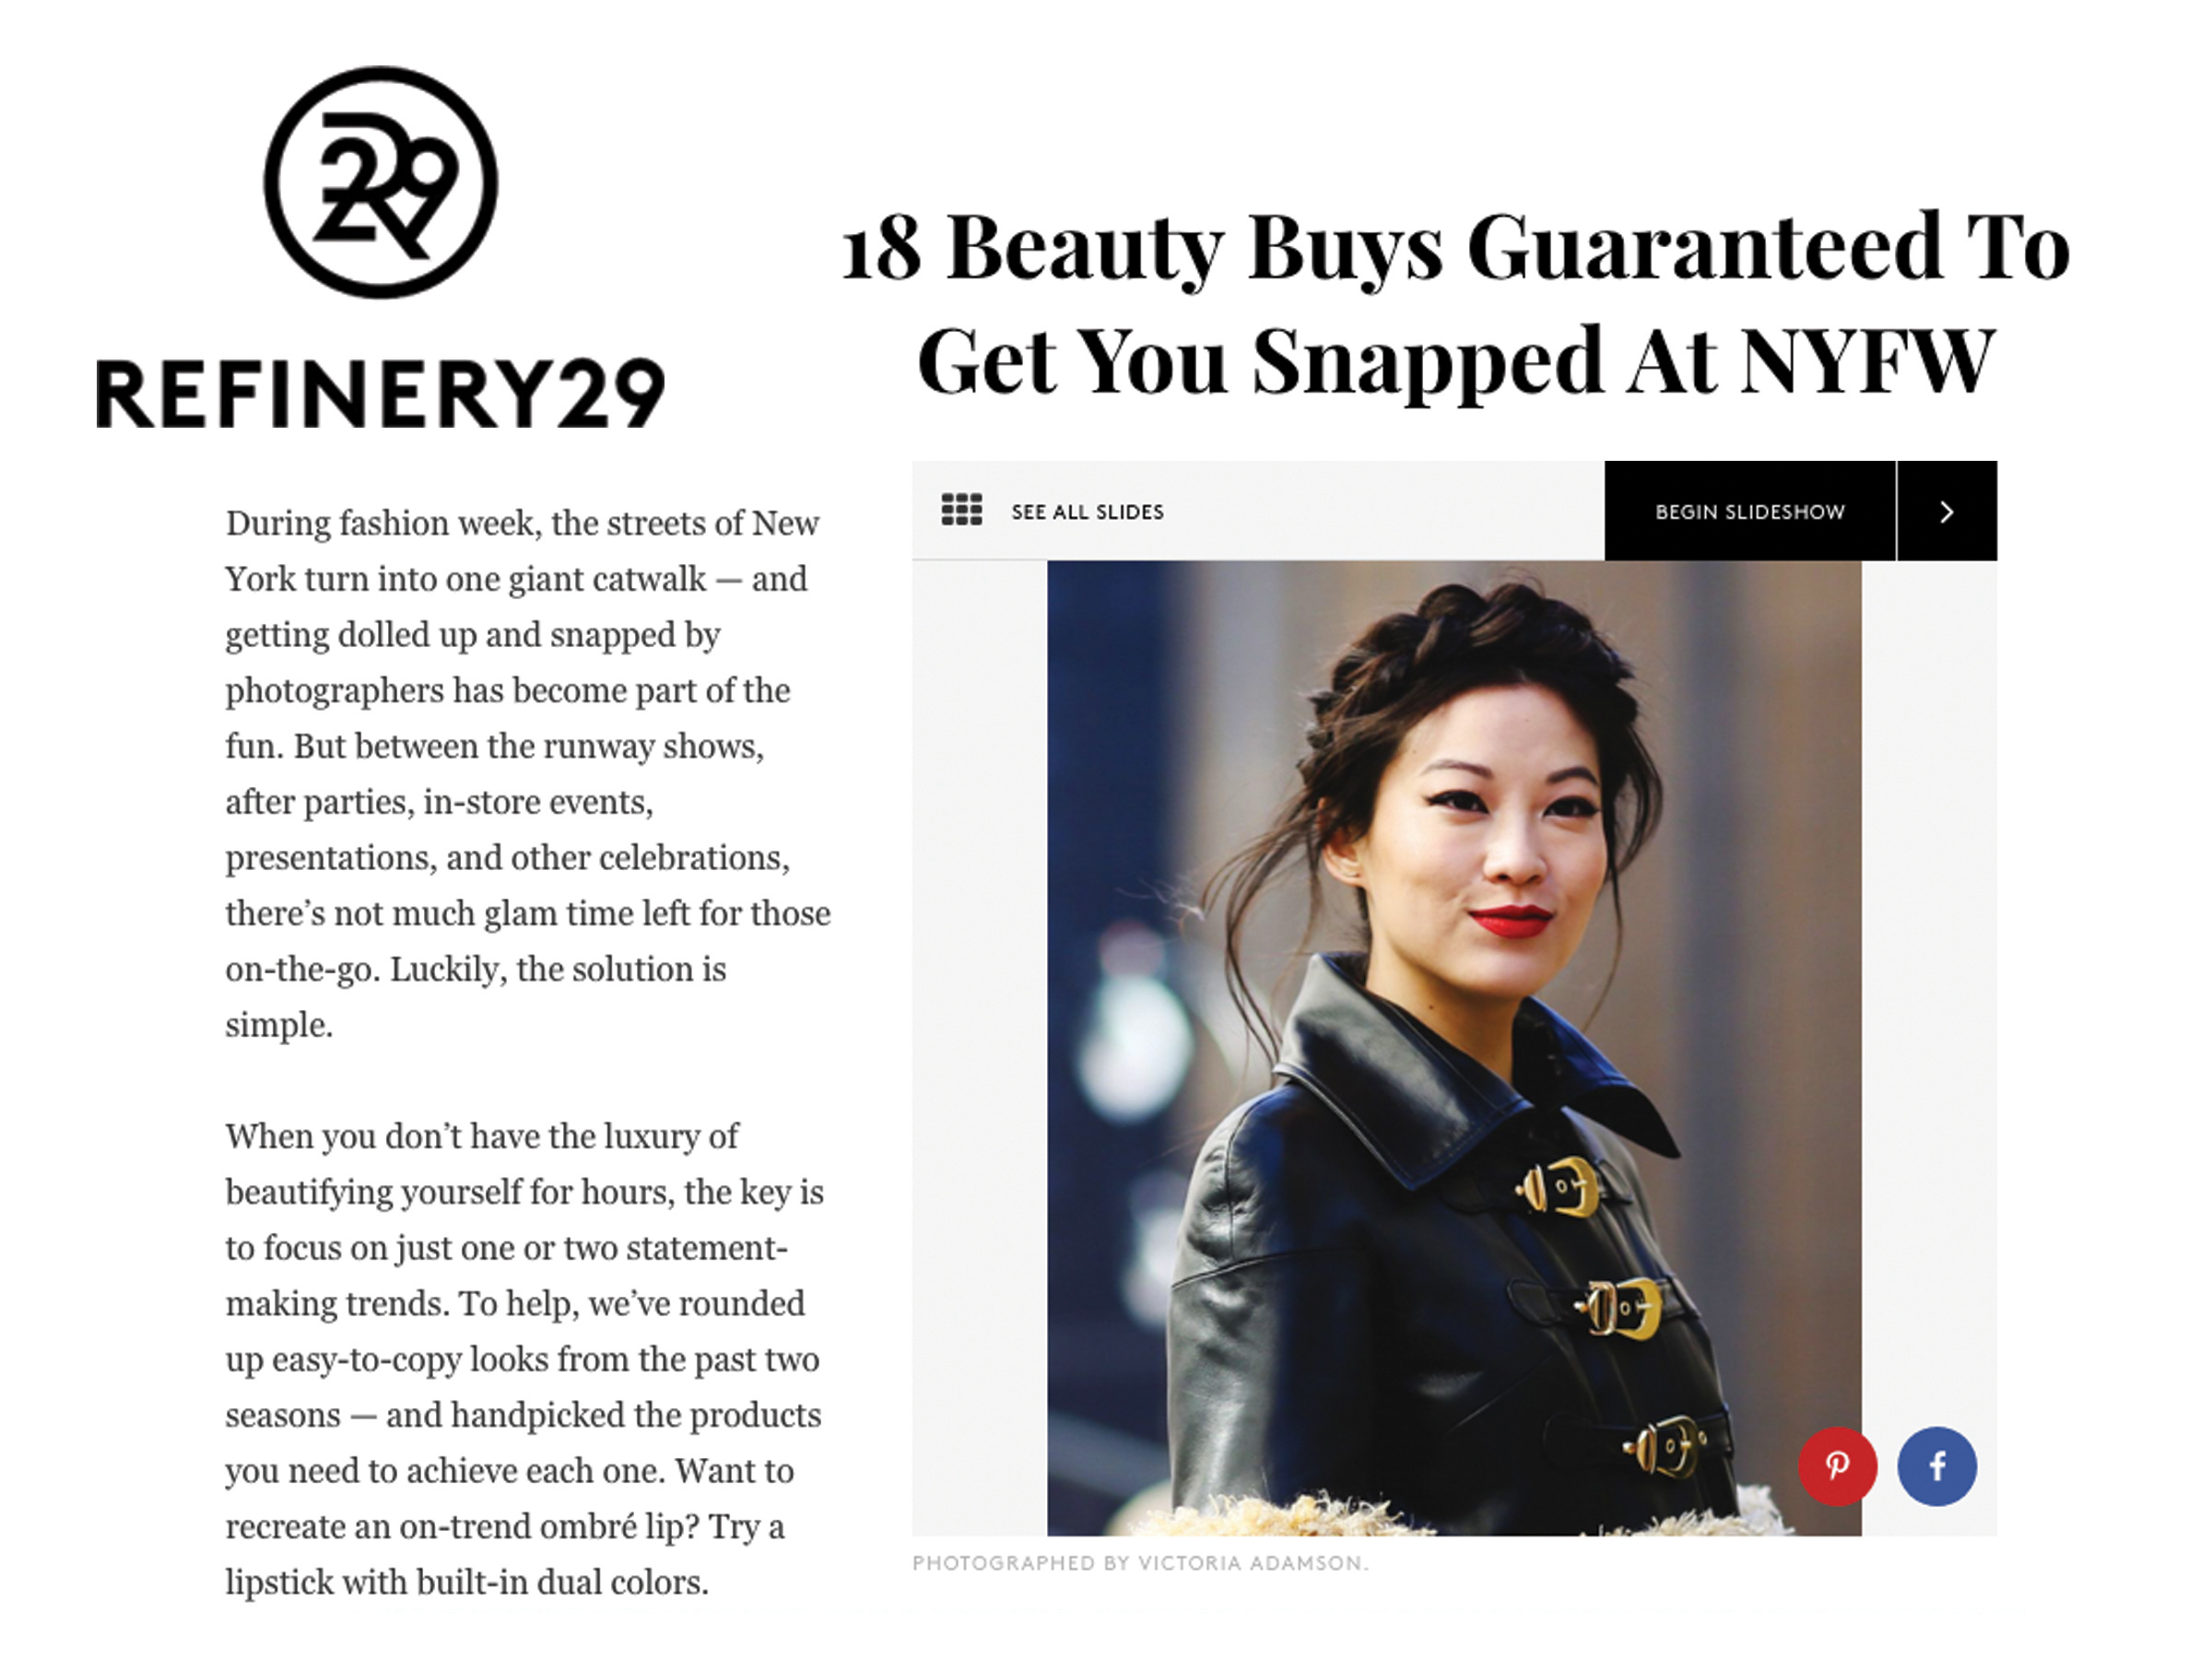 Refinery 29 how to get photographed snapped at nyfw new york fashion week actress arden cho best dressed beauty hair braid red lip asian beauty lamb leather coat gold hardware buckles straps curly faux fur mongolian lamb made-to-measure womenswear bridal custom bespoke handcrafted sustainable ethical local production manufacturing made in new york city nyc brooklyn bushwick emerging designer ones to watch new talent rising star best of american fashion young designer